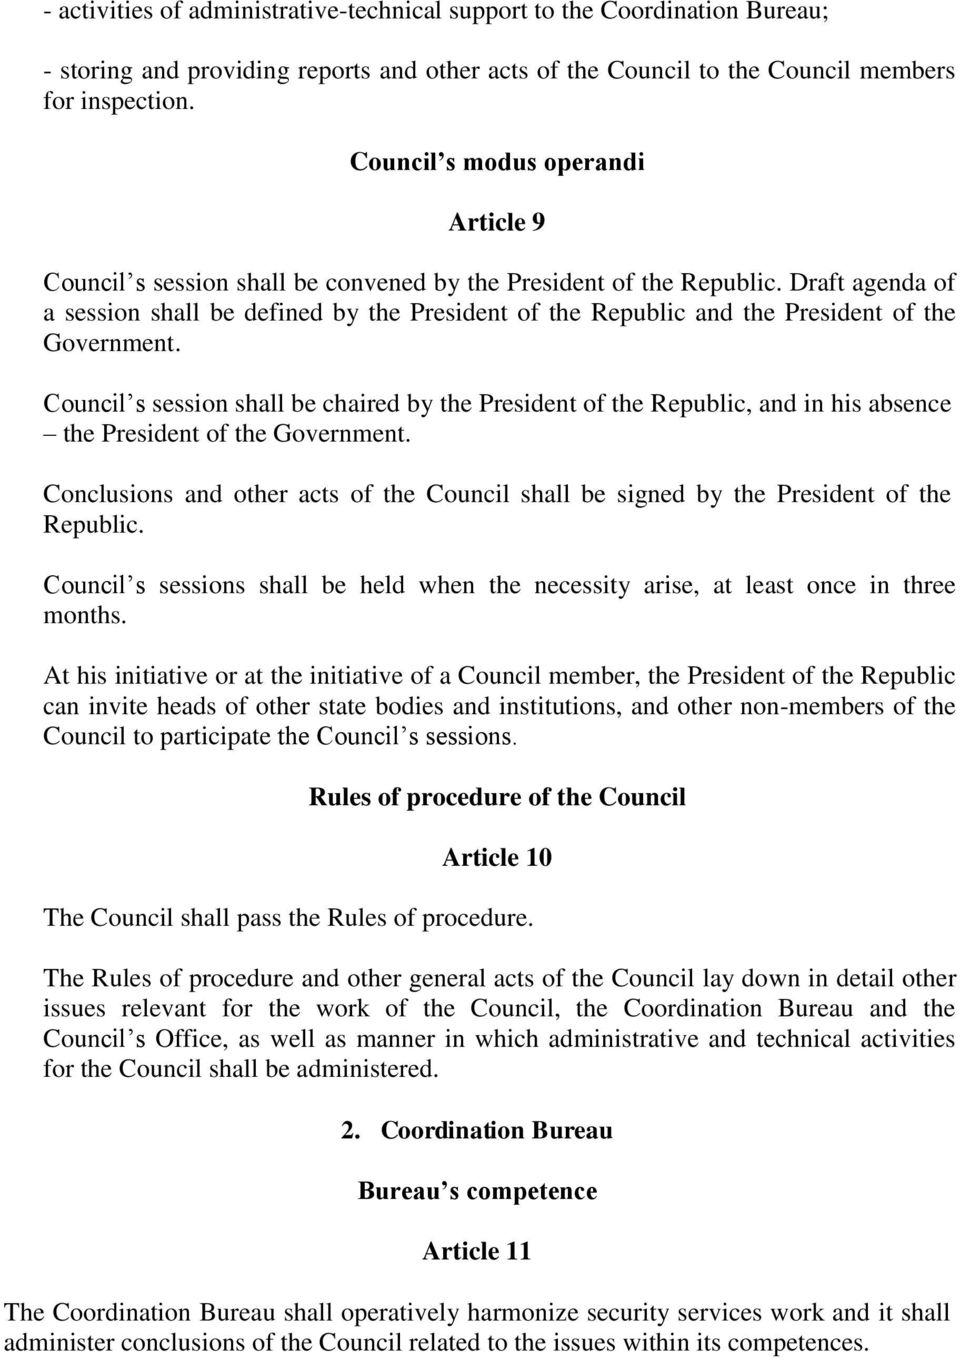 Draft agenda of a session shall be defined by the President of the Republic and the President of the Government.